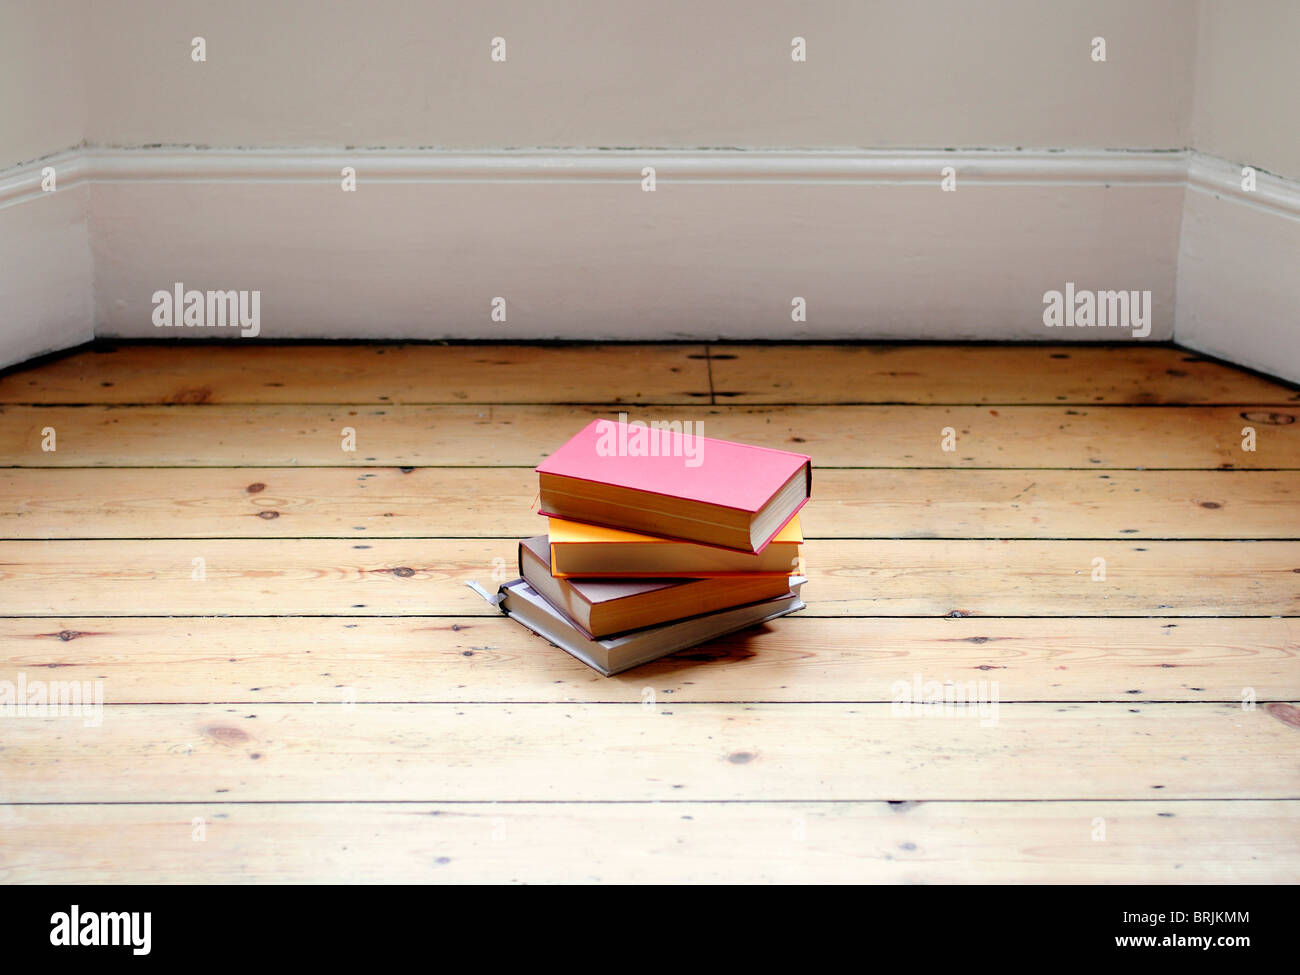 Books stacked on hardwood floor - Stock Image